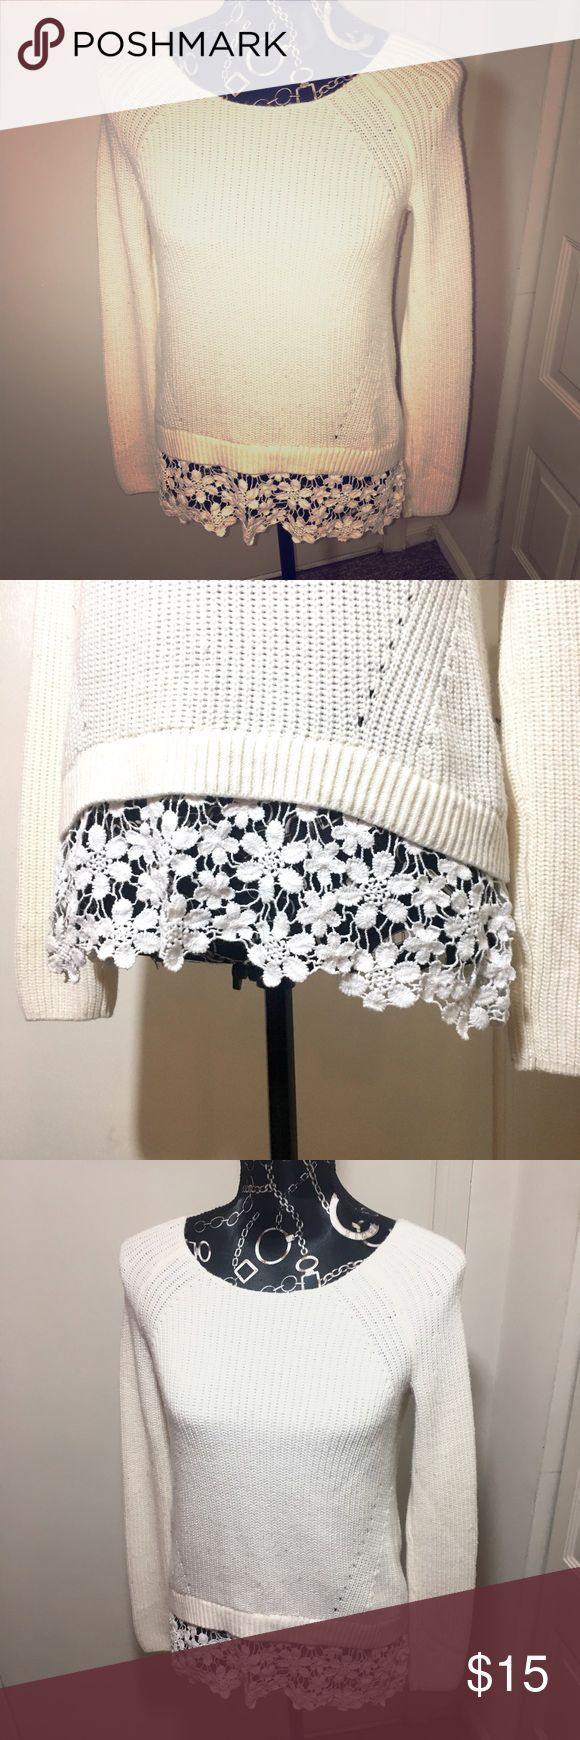 Cream Sweater with Lace Detail Adorable nearly new INC cream sweater with white lace embellishment. INC International Concepts Sweaters